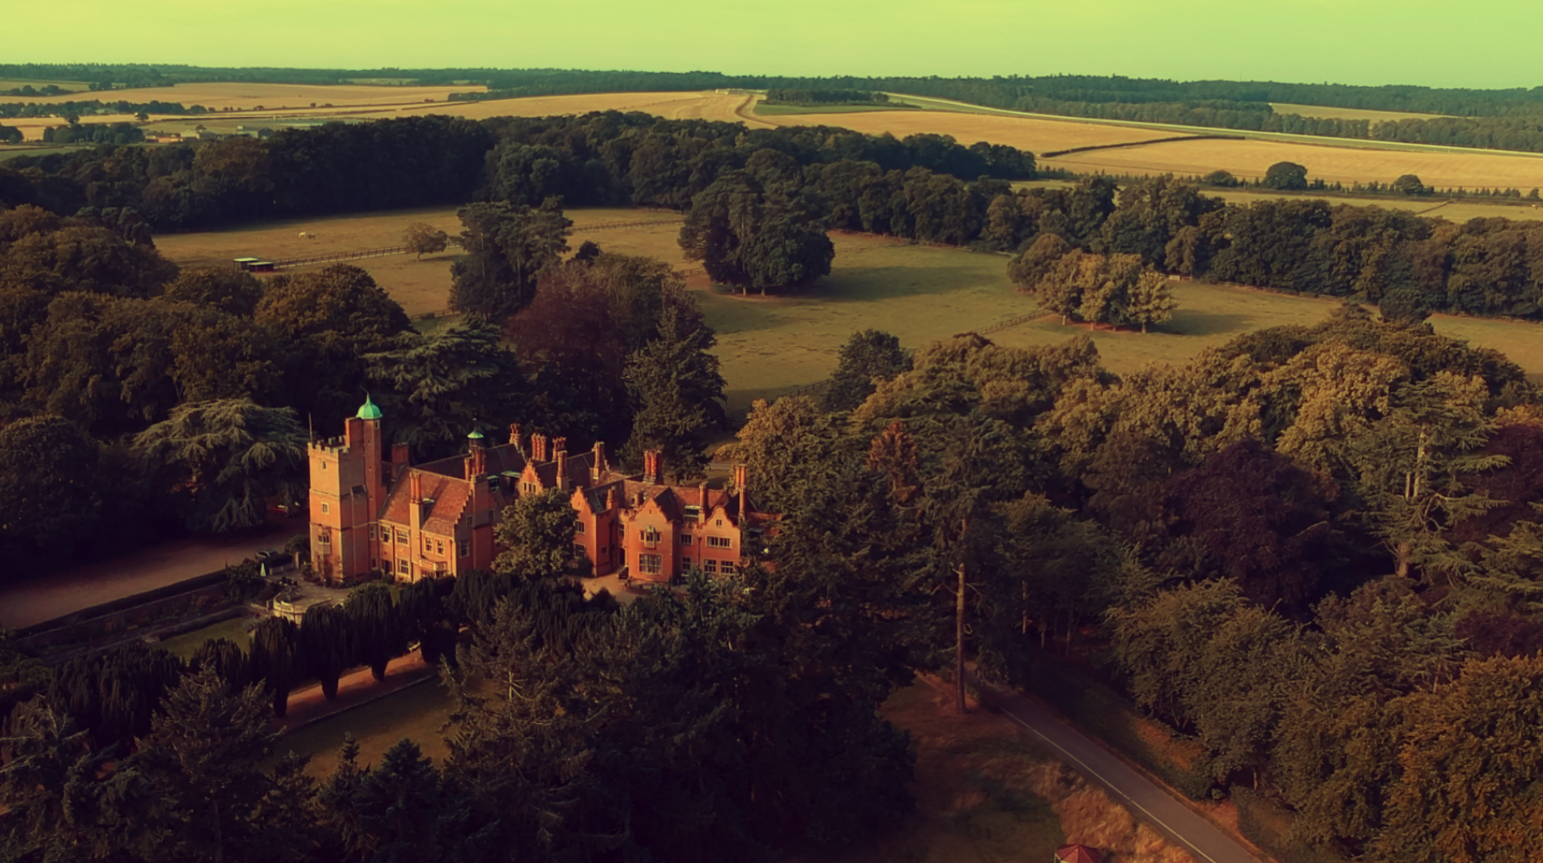 Image: Screenshot from Jenna & Jamies Wedding Film! The Race Wedding Videography drone setting the scene of this countryside location. Lanwades Hall even looks grand from a distance.